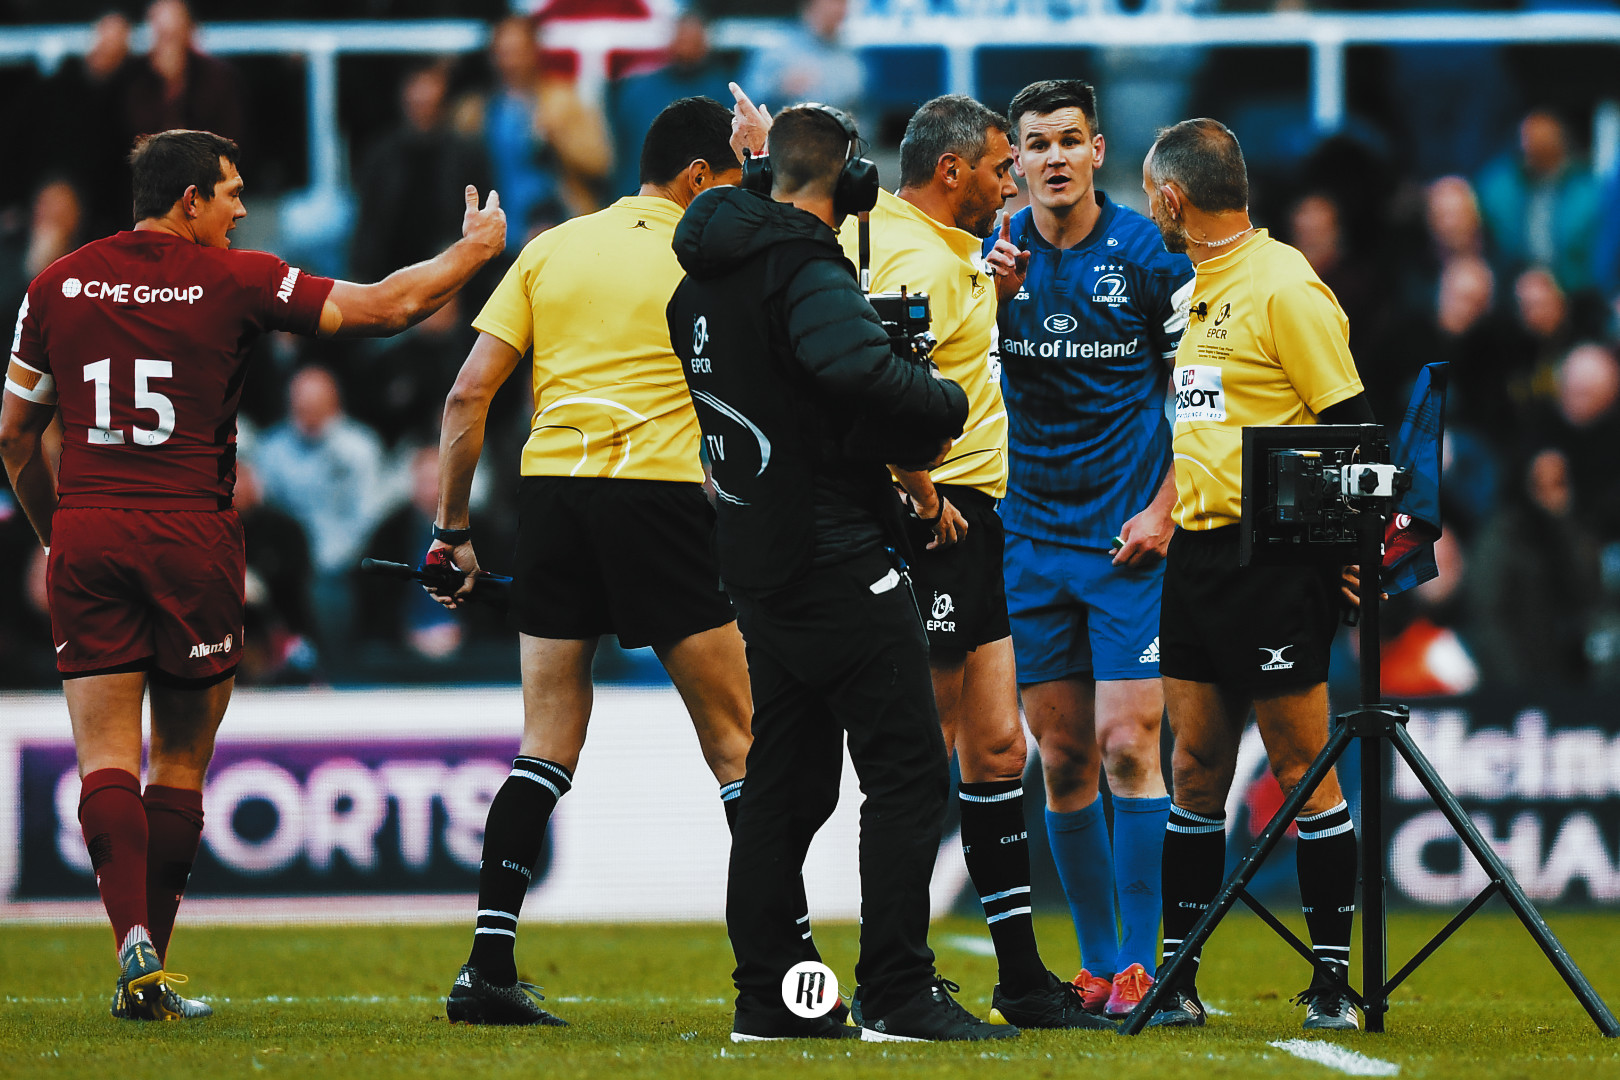 What rugby must learn from football's VAR system if it is to avoid refereeing injustice